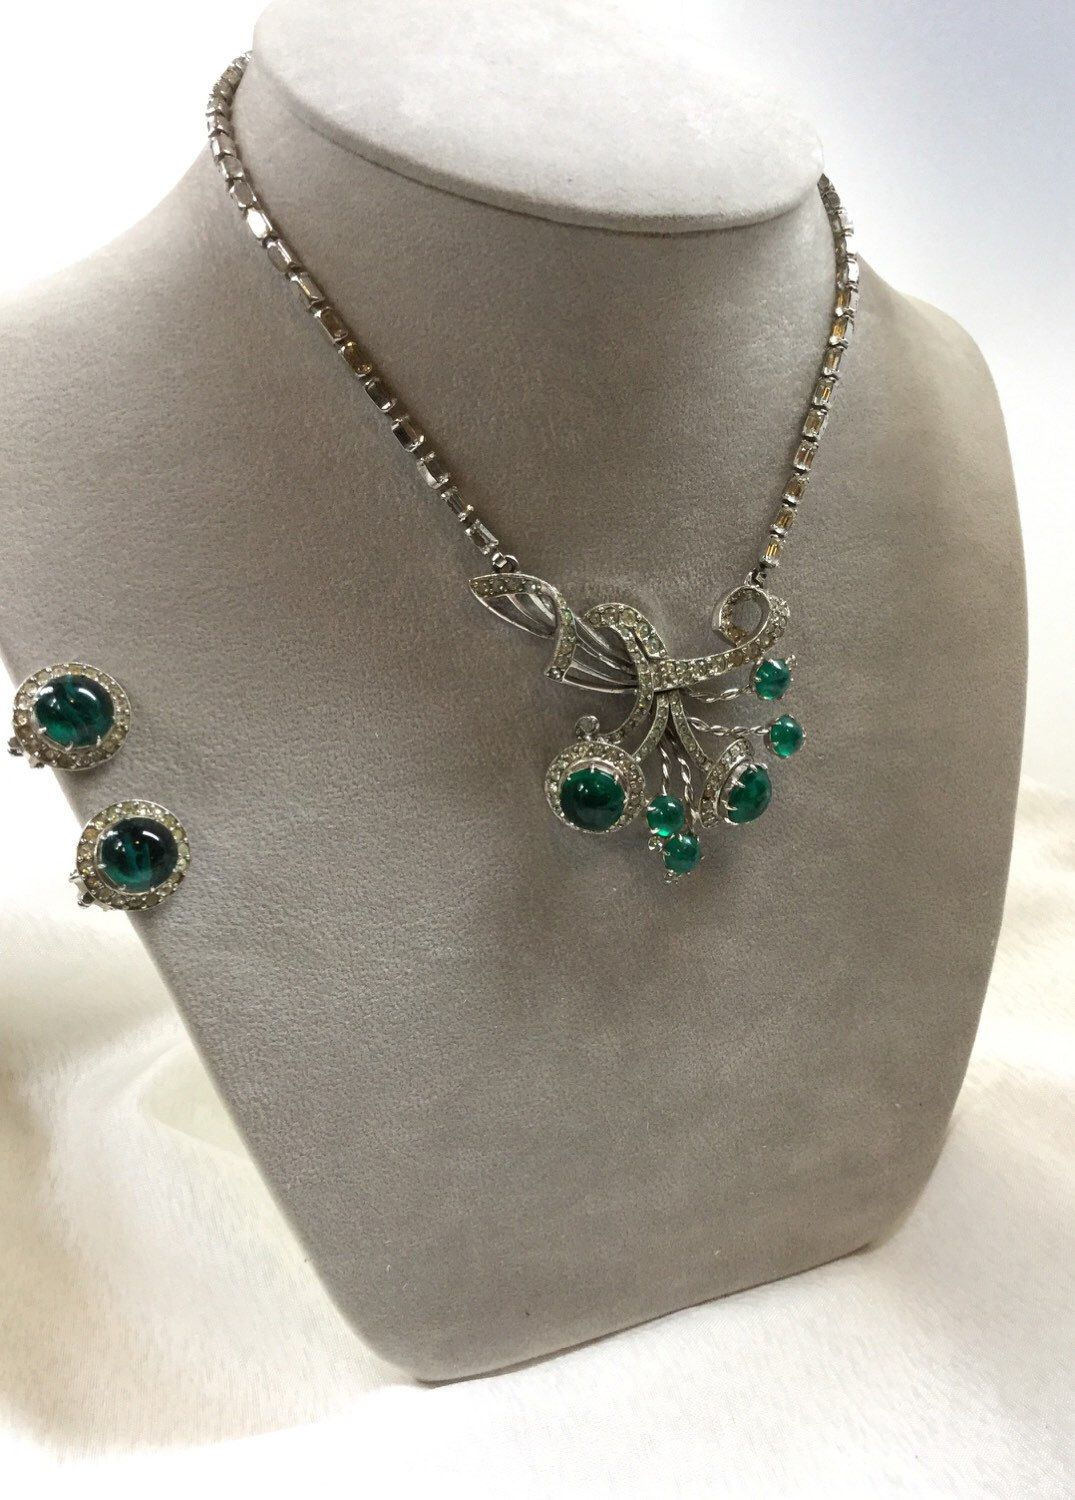 Reserve for brenda schiaparelli necklace and earring set exquisite